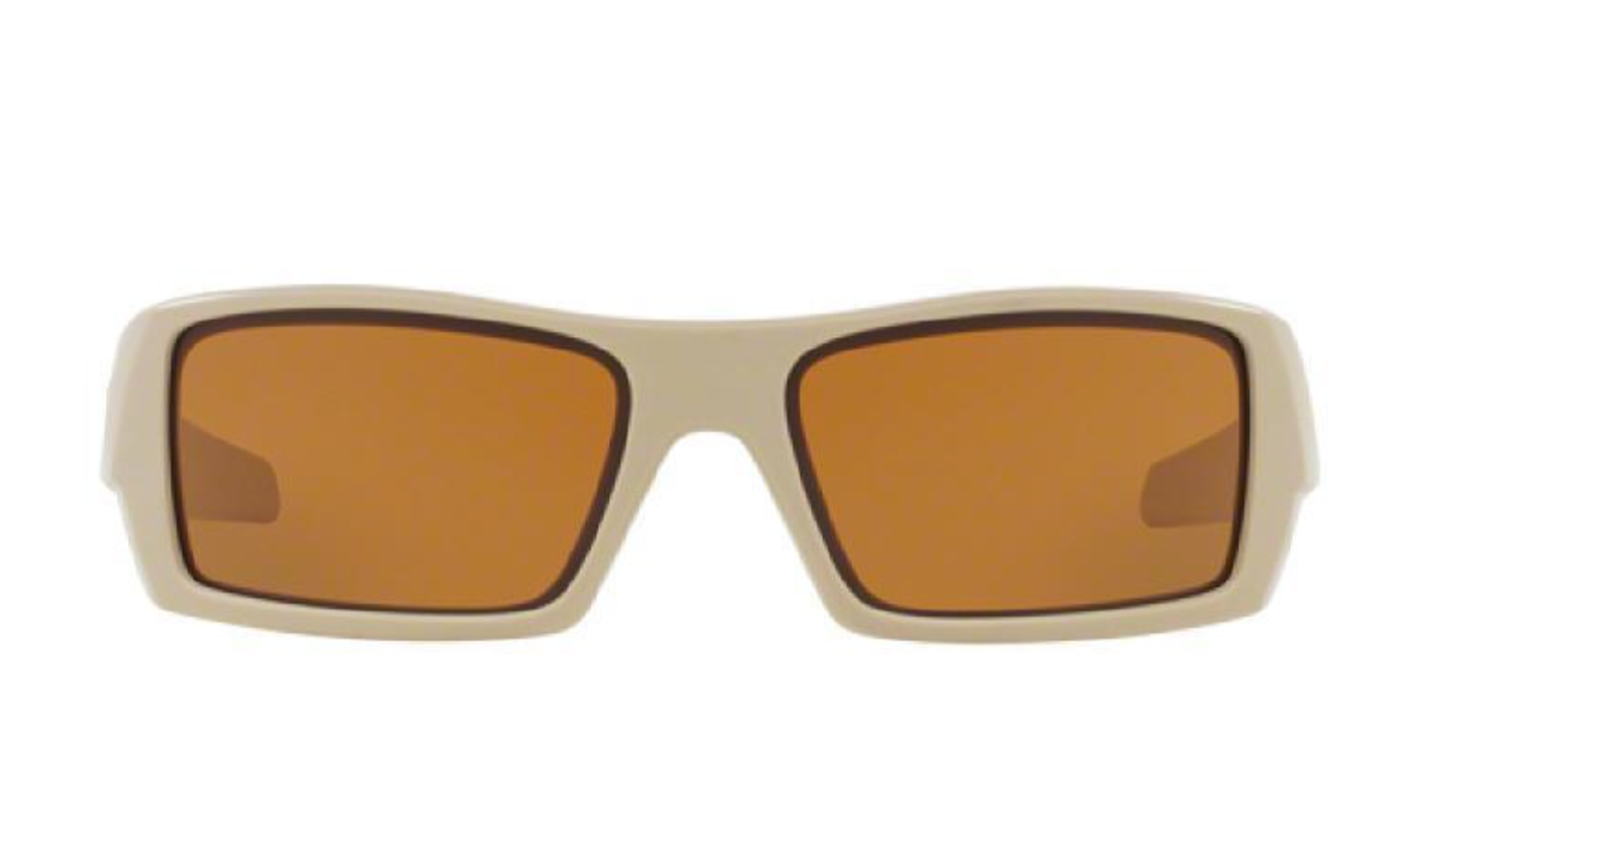 Glasses Similar To Oakley Gascan | CINEMAS 93